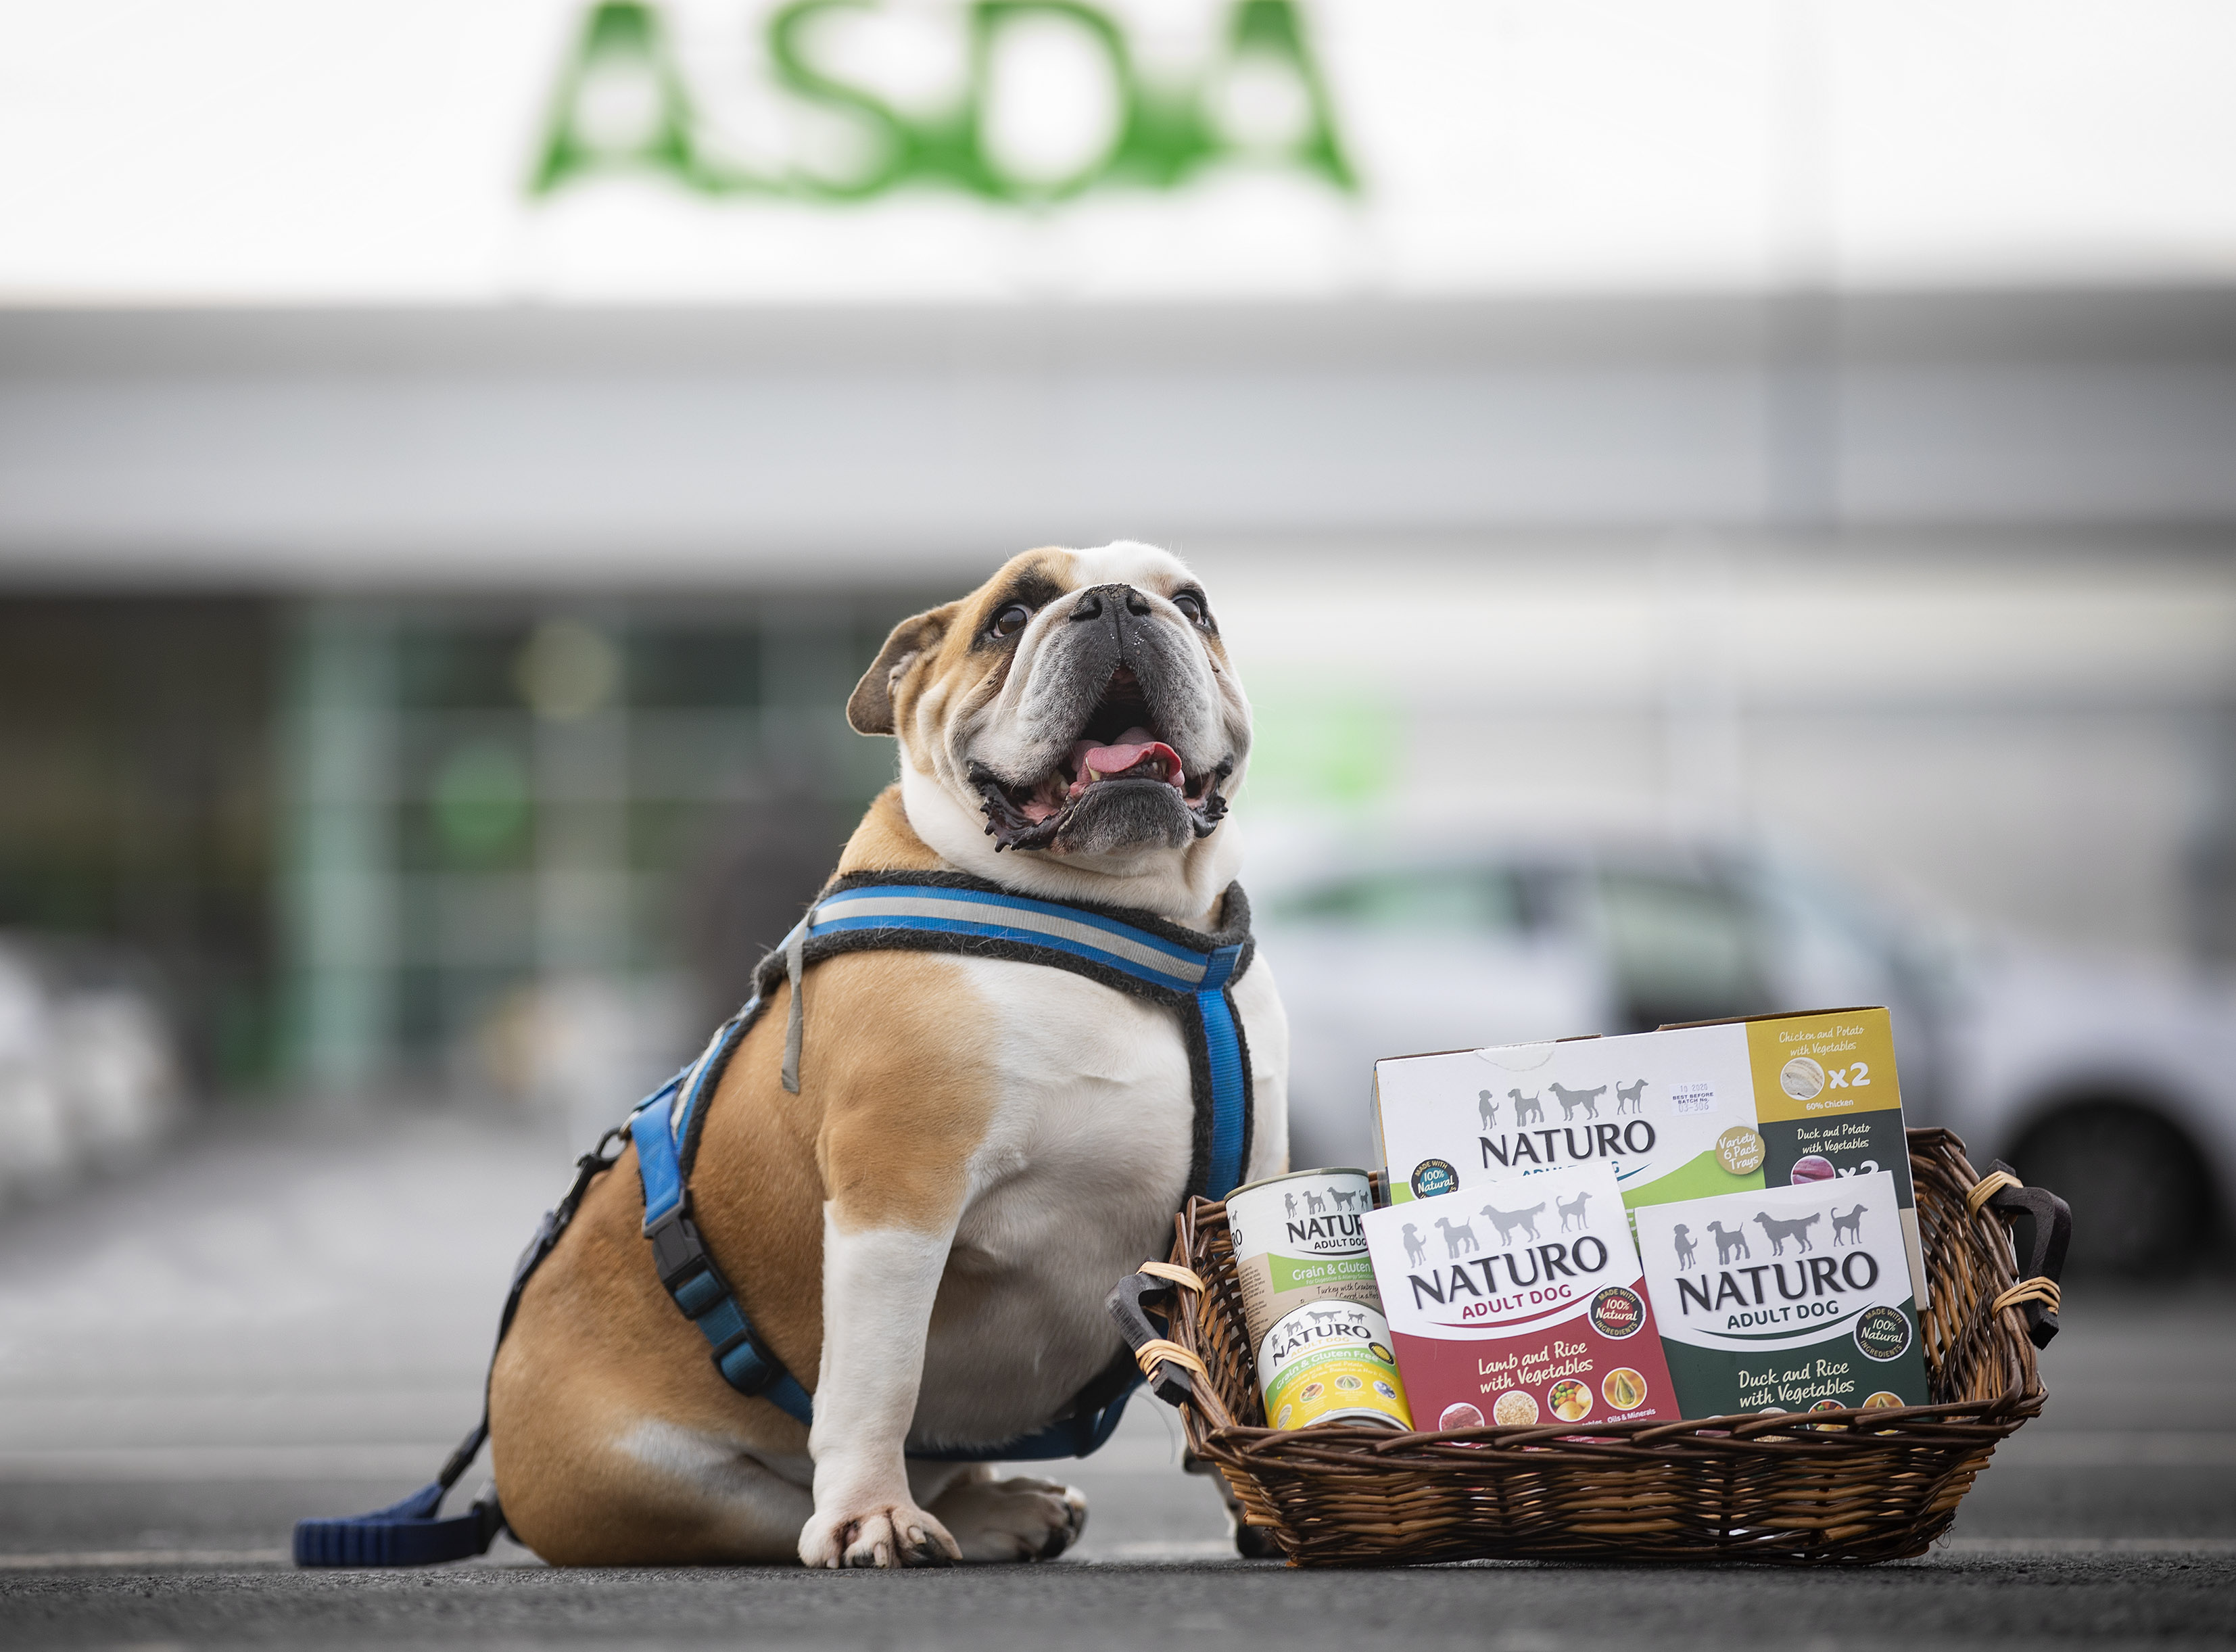 Best Dog Collars 2020 Naturo range goes from strength to strength in Asda Stores